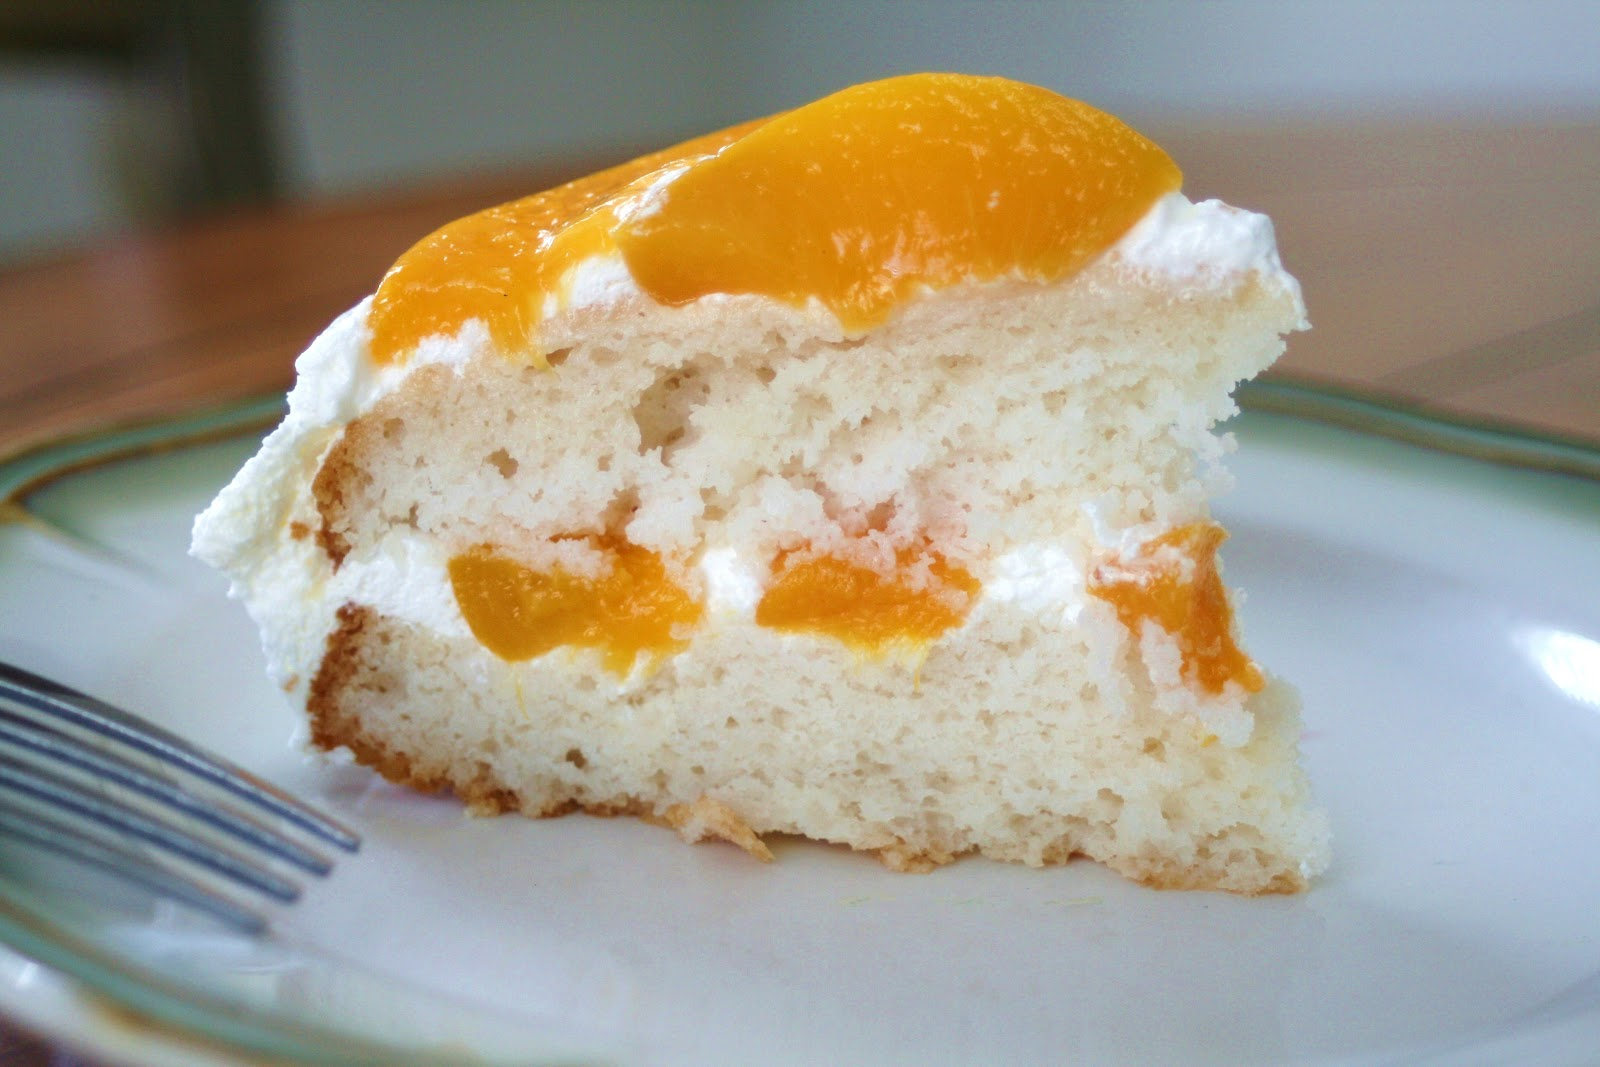 Recipe peaches and cream cake